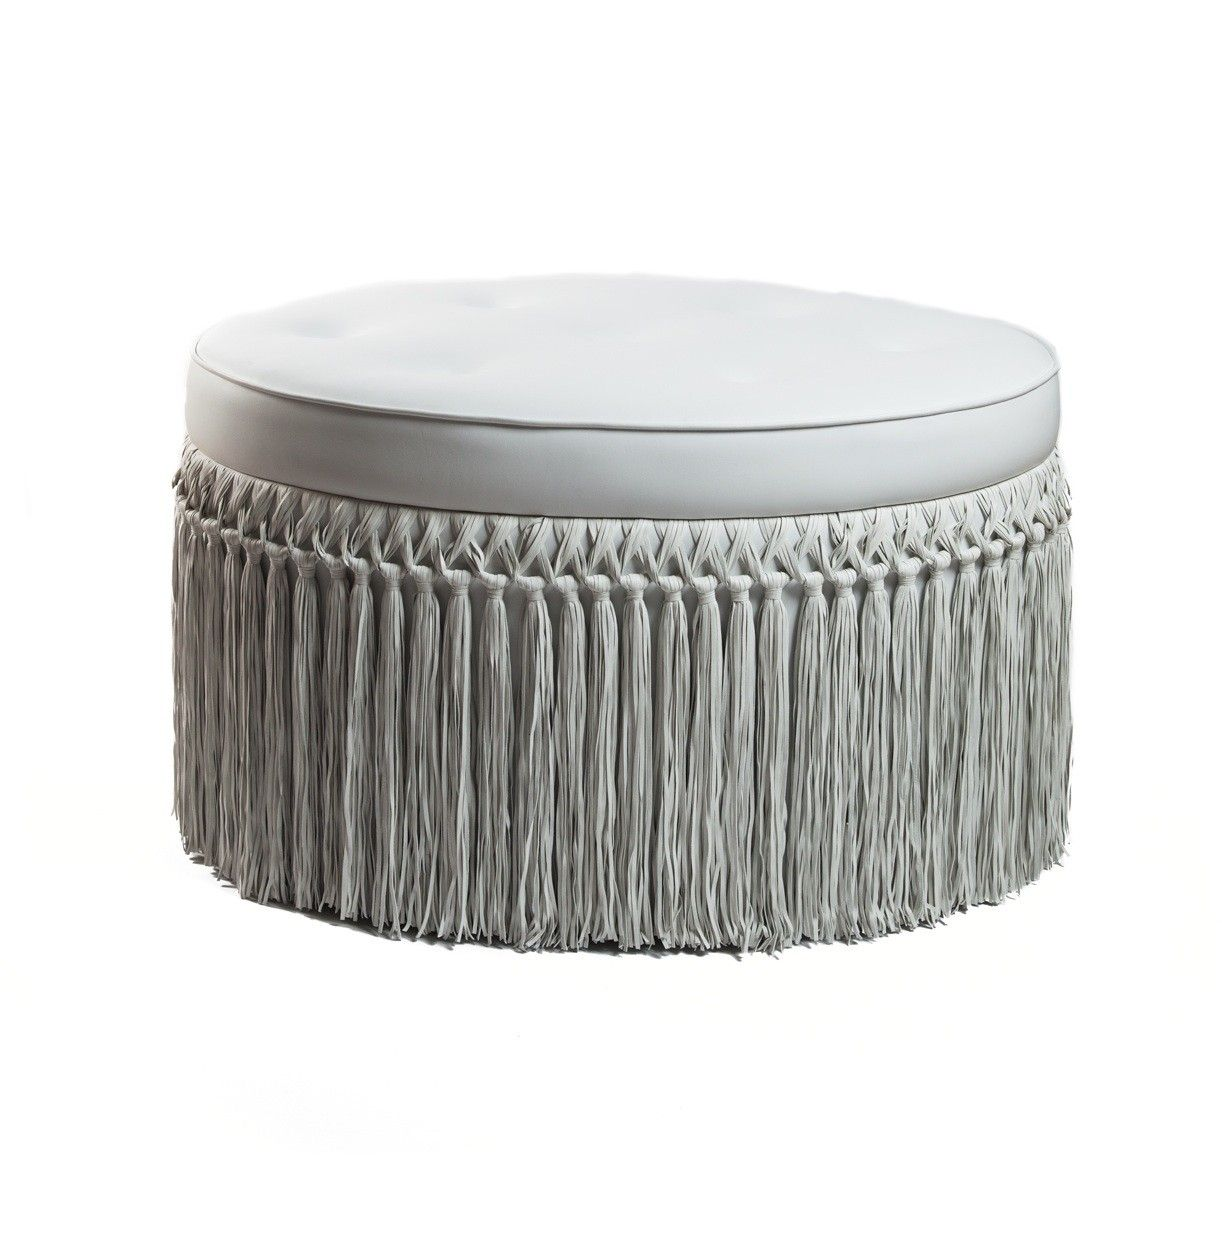 BARBARELLA LUXE LEATHER FRINGED OTTOMAN   FOOTSTOOLS   FOOTSTOOLS, FRINGING  AND OCCASIONAL FURNITURE